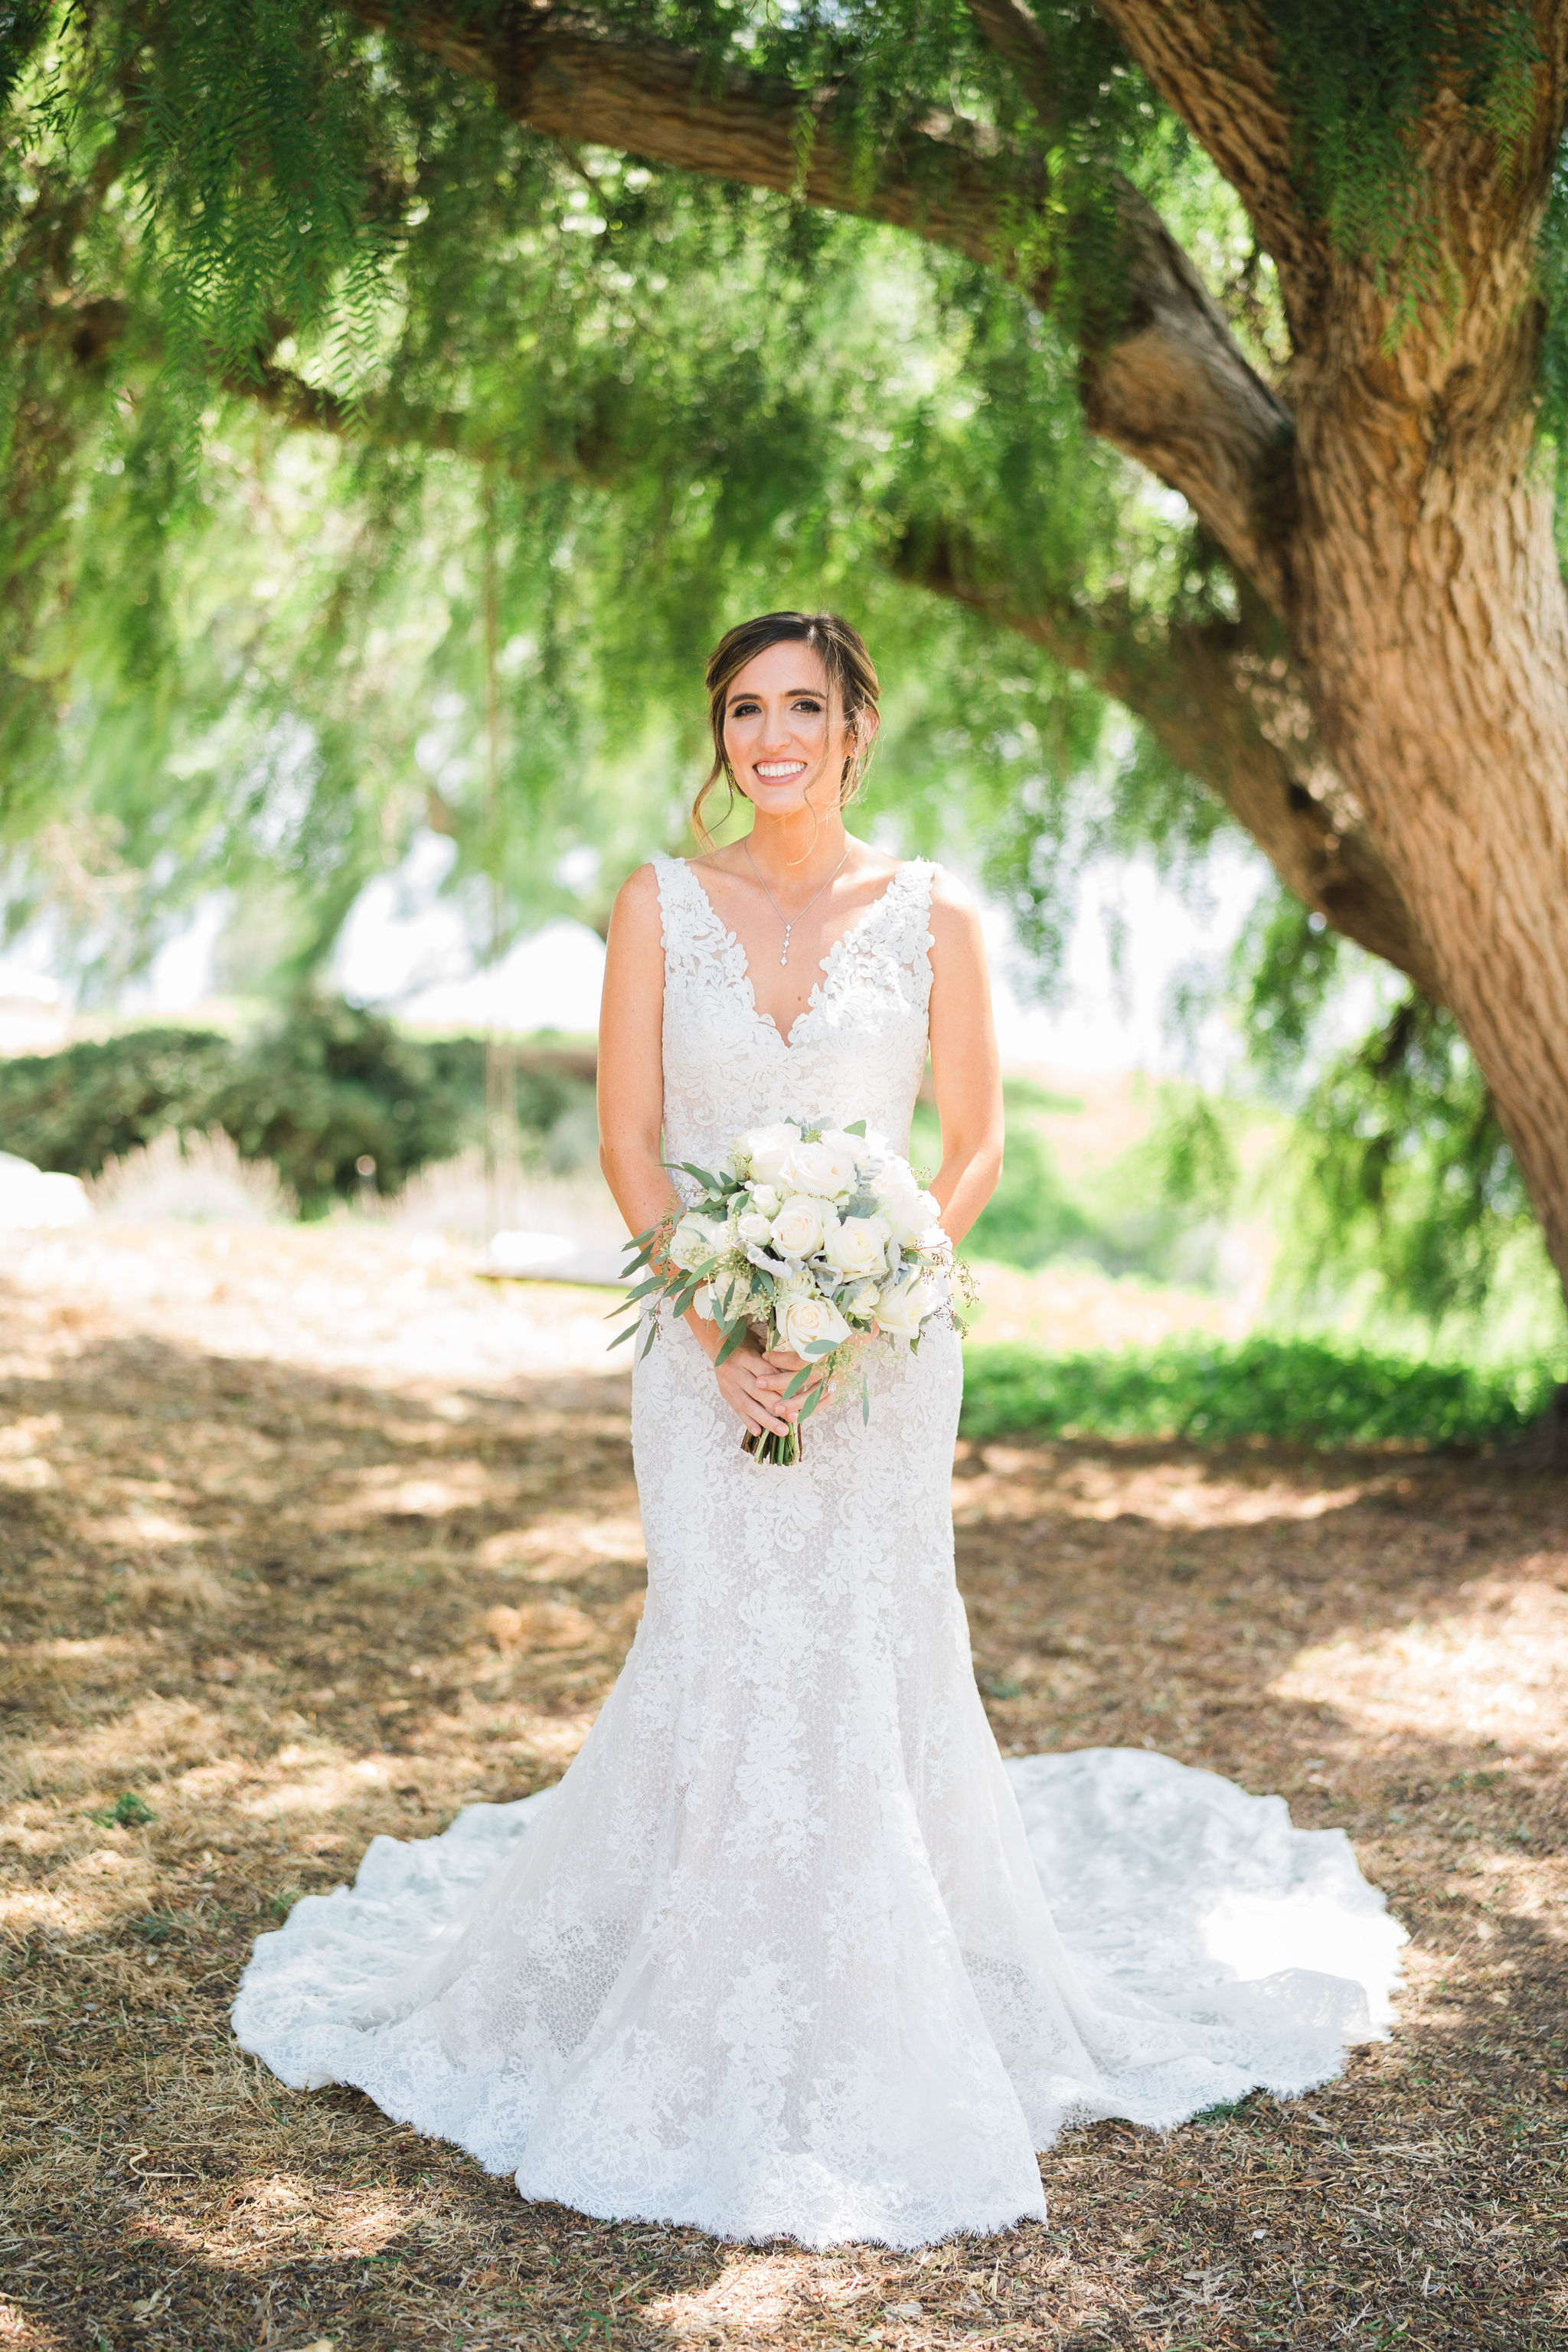 Bride | Catalina View Gardens